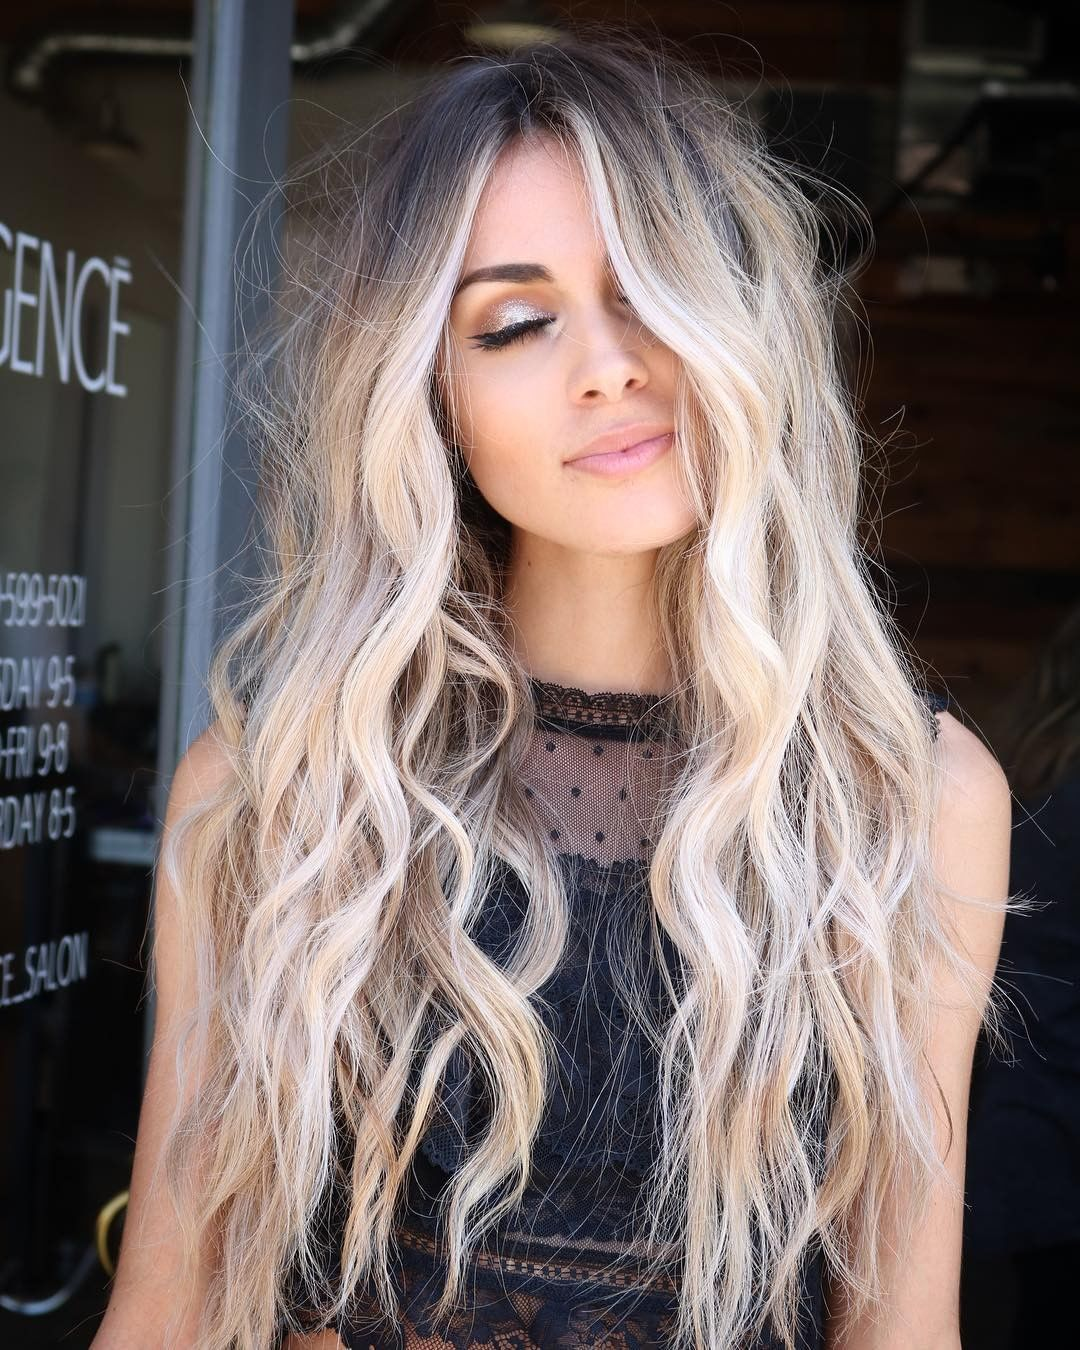 How To Find Best Hair Color For Your Skin Tone: A